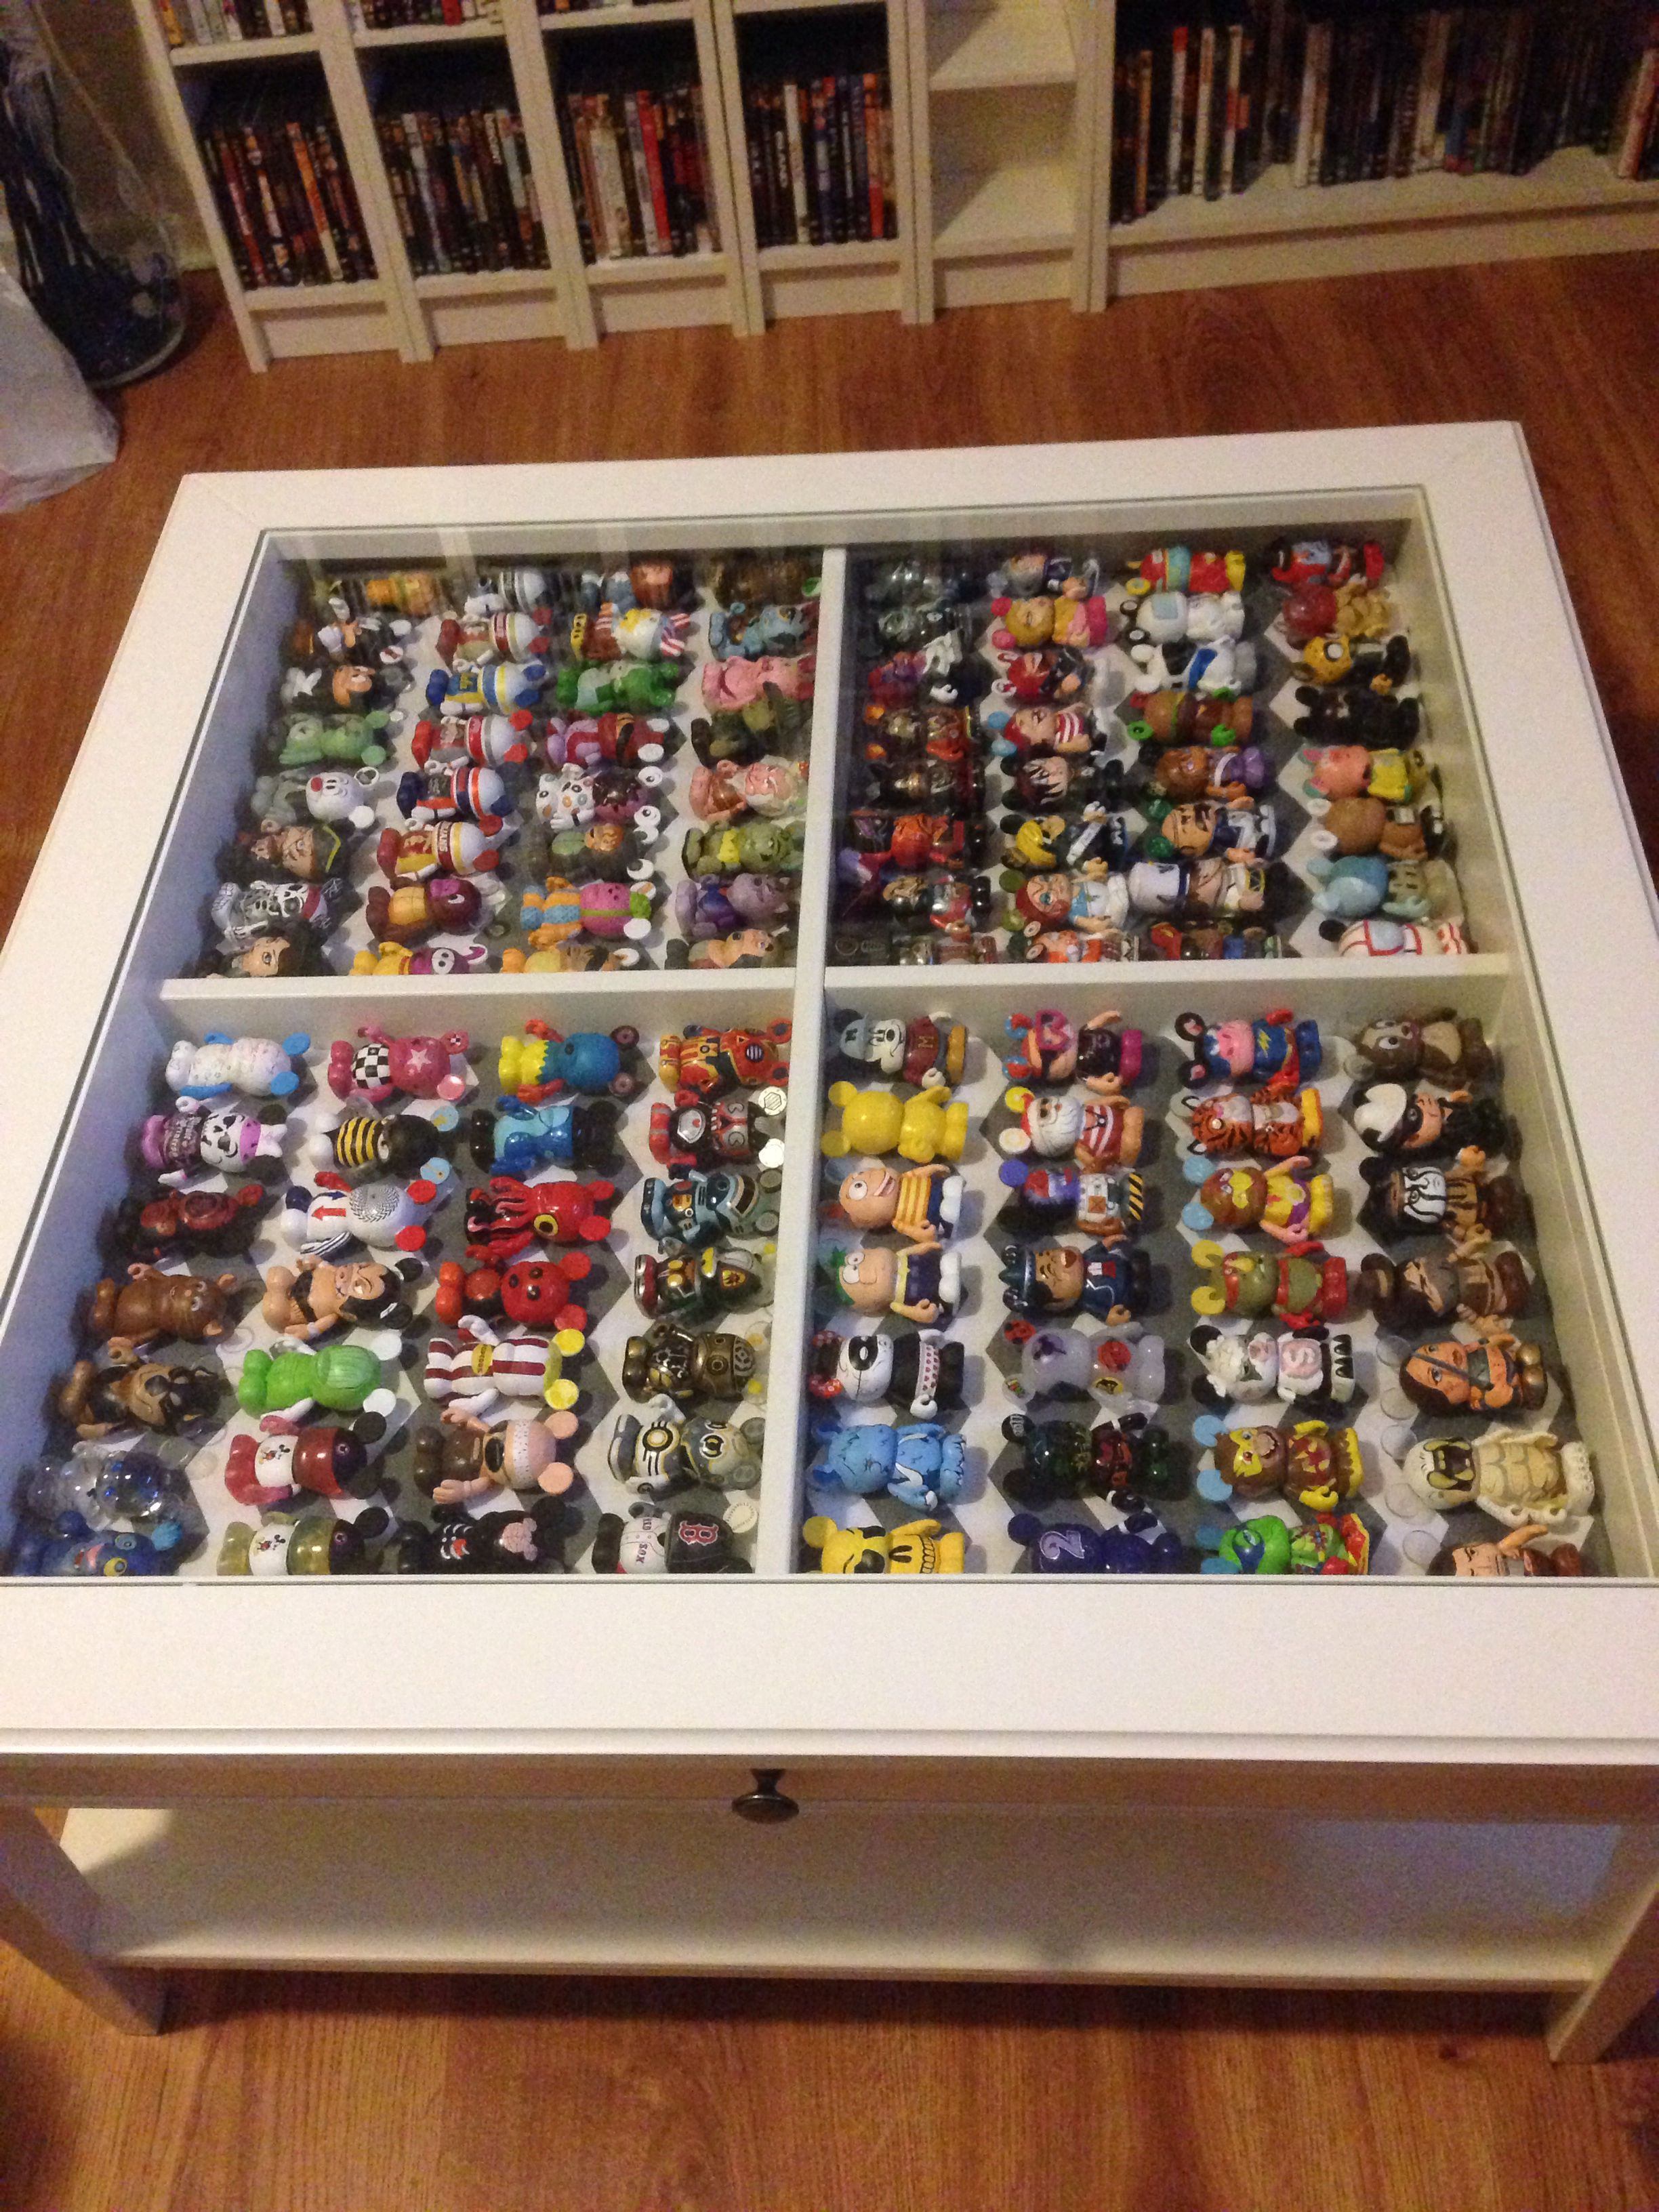 My First Diy Project I Actually Completed A Shadow Box Coffee Table Filled With Disney